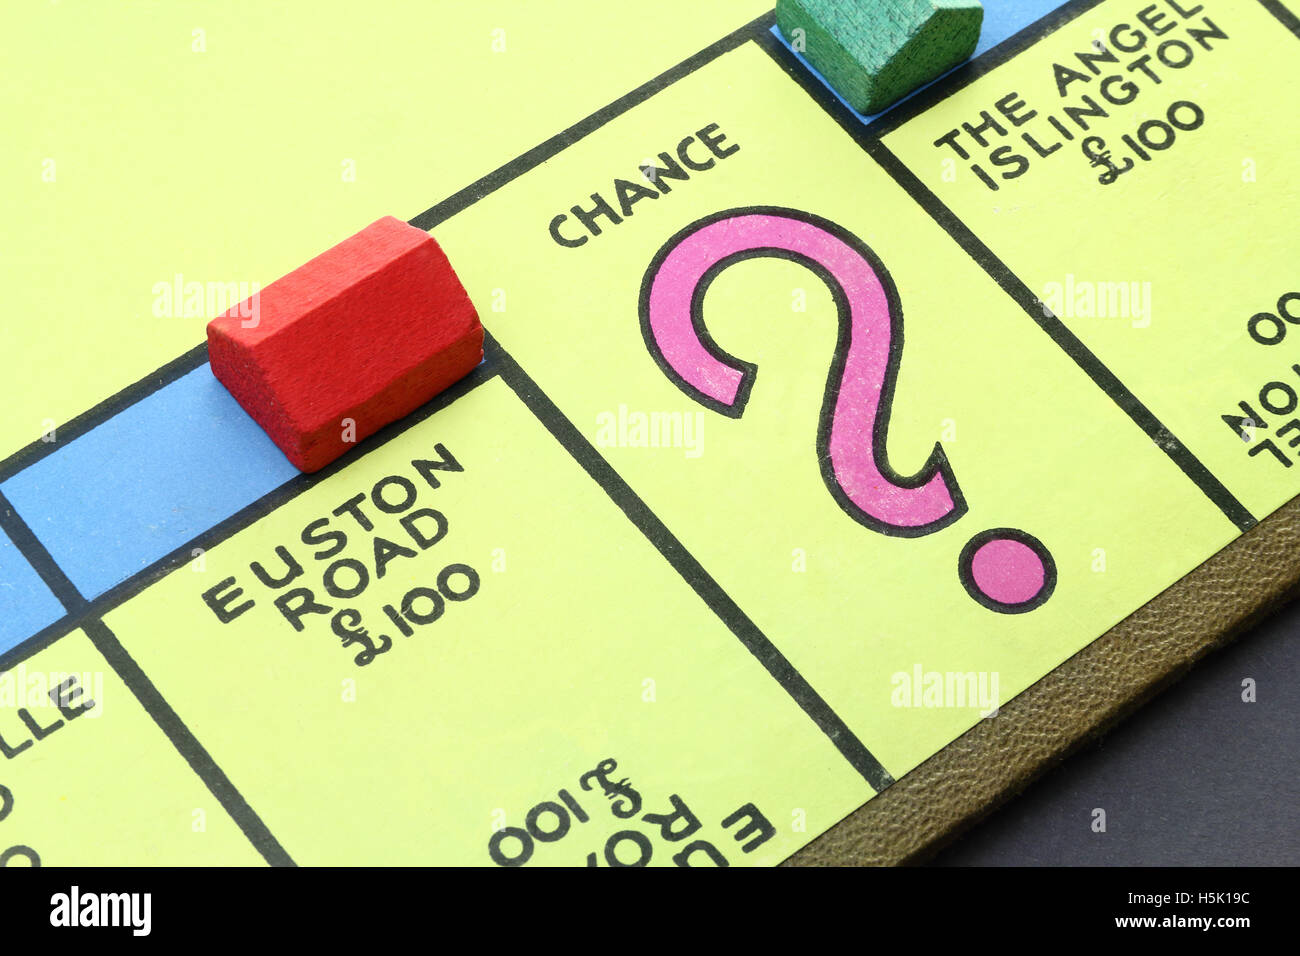 Vintage British Monopoly board (Euston Road and Chance) circa 1940 - Stock Image